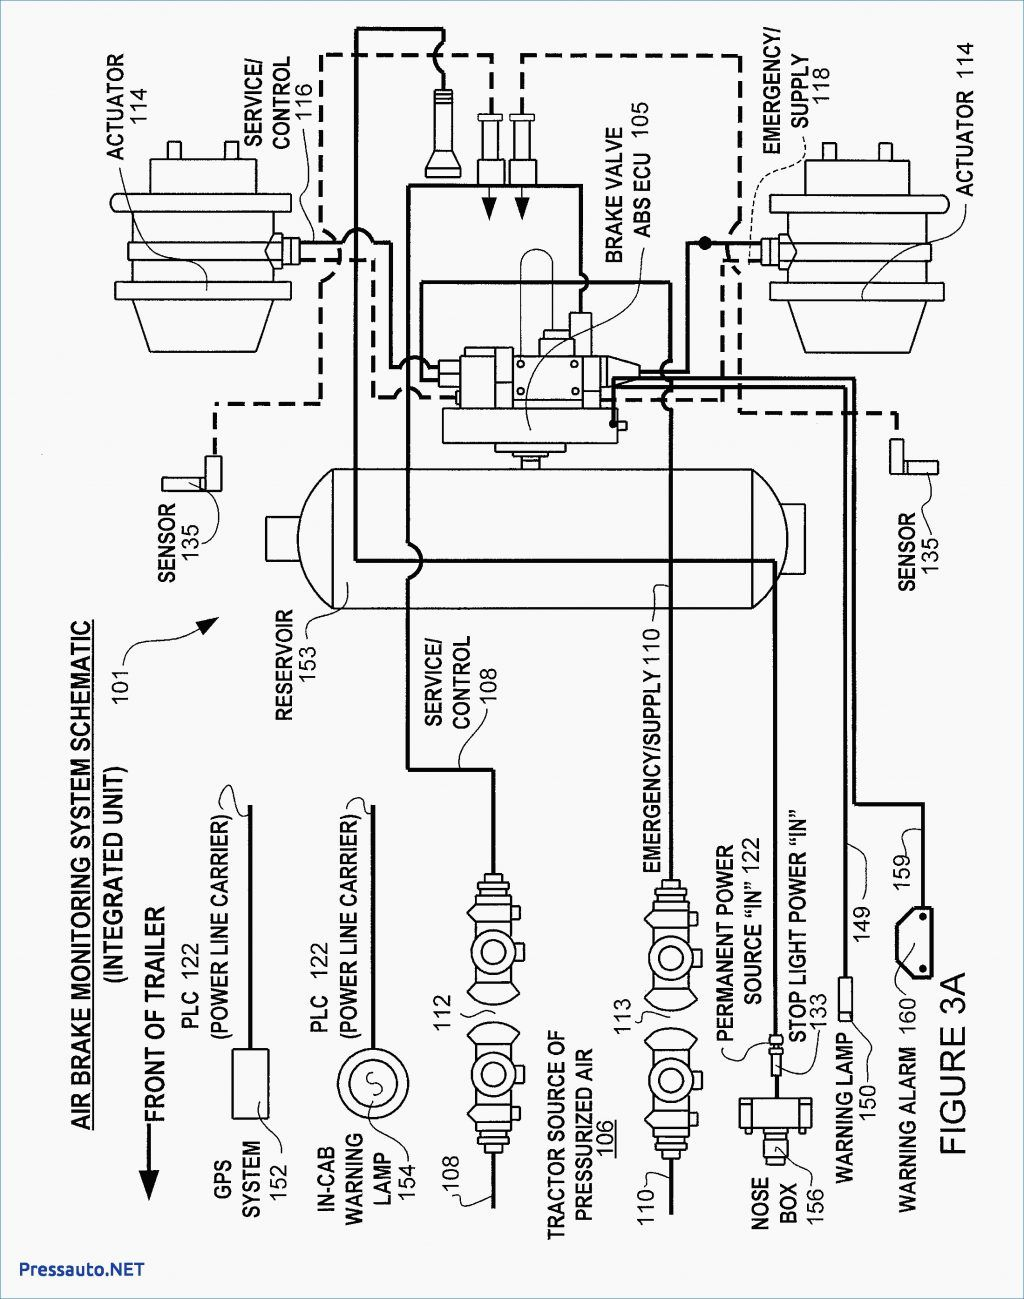 Freightliner Wiring Diagram Gas Boiler Emergency Stop Of